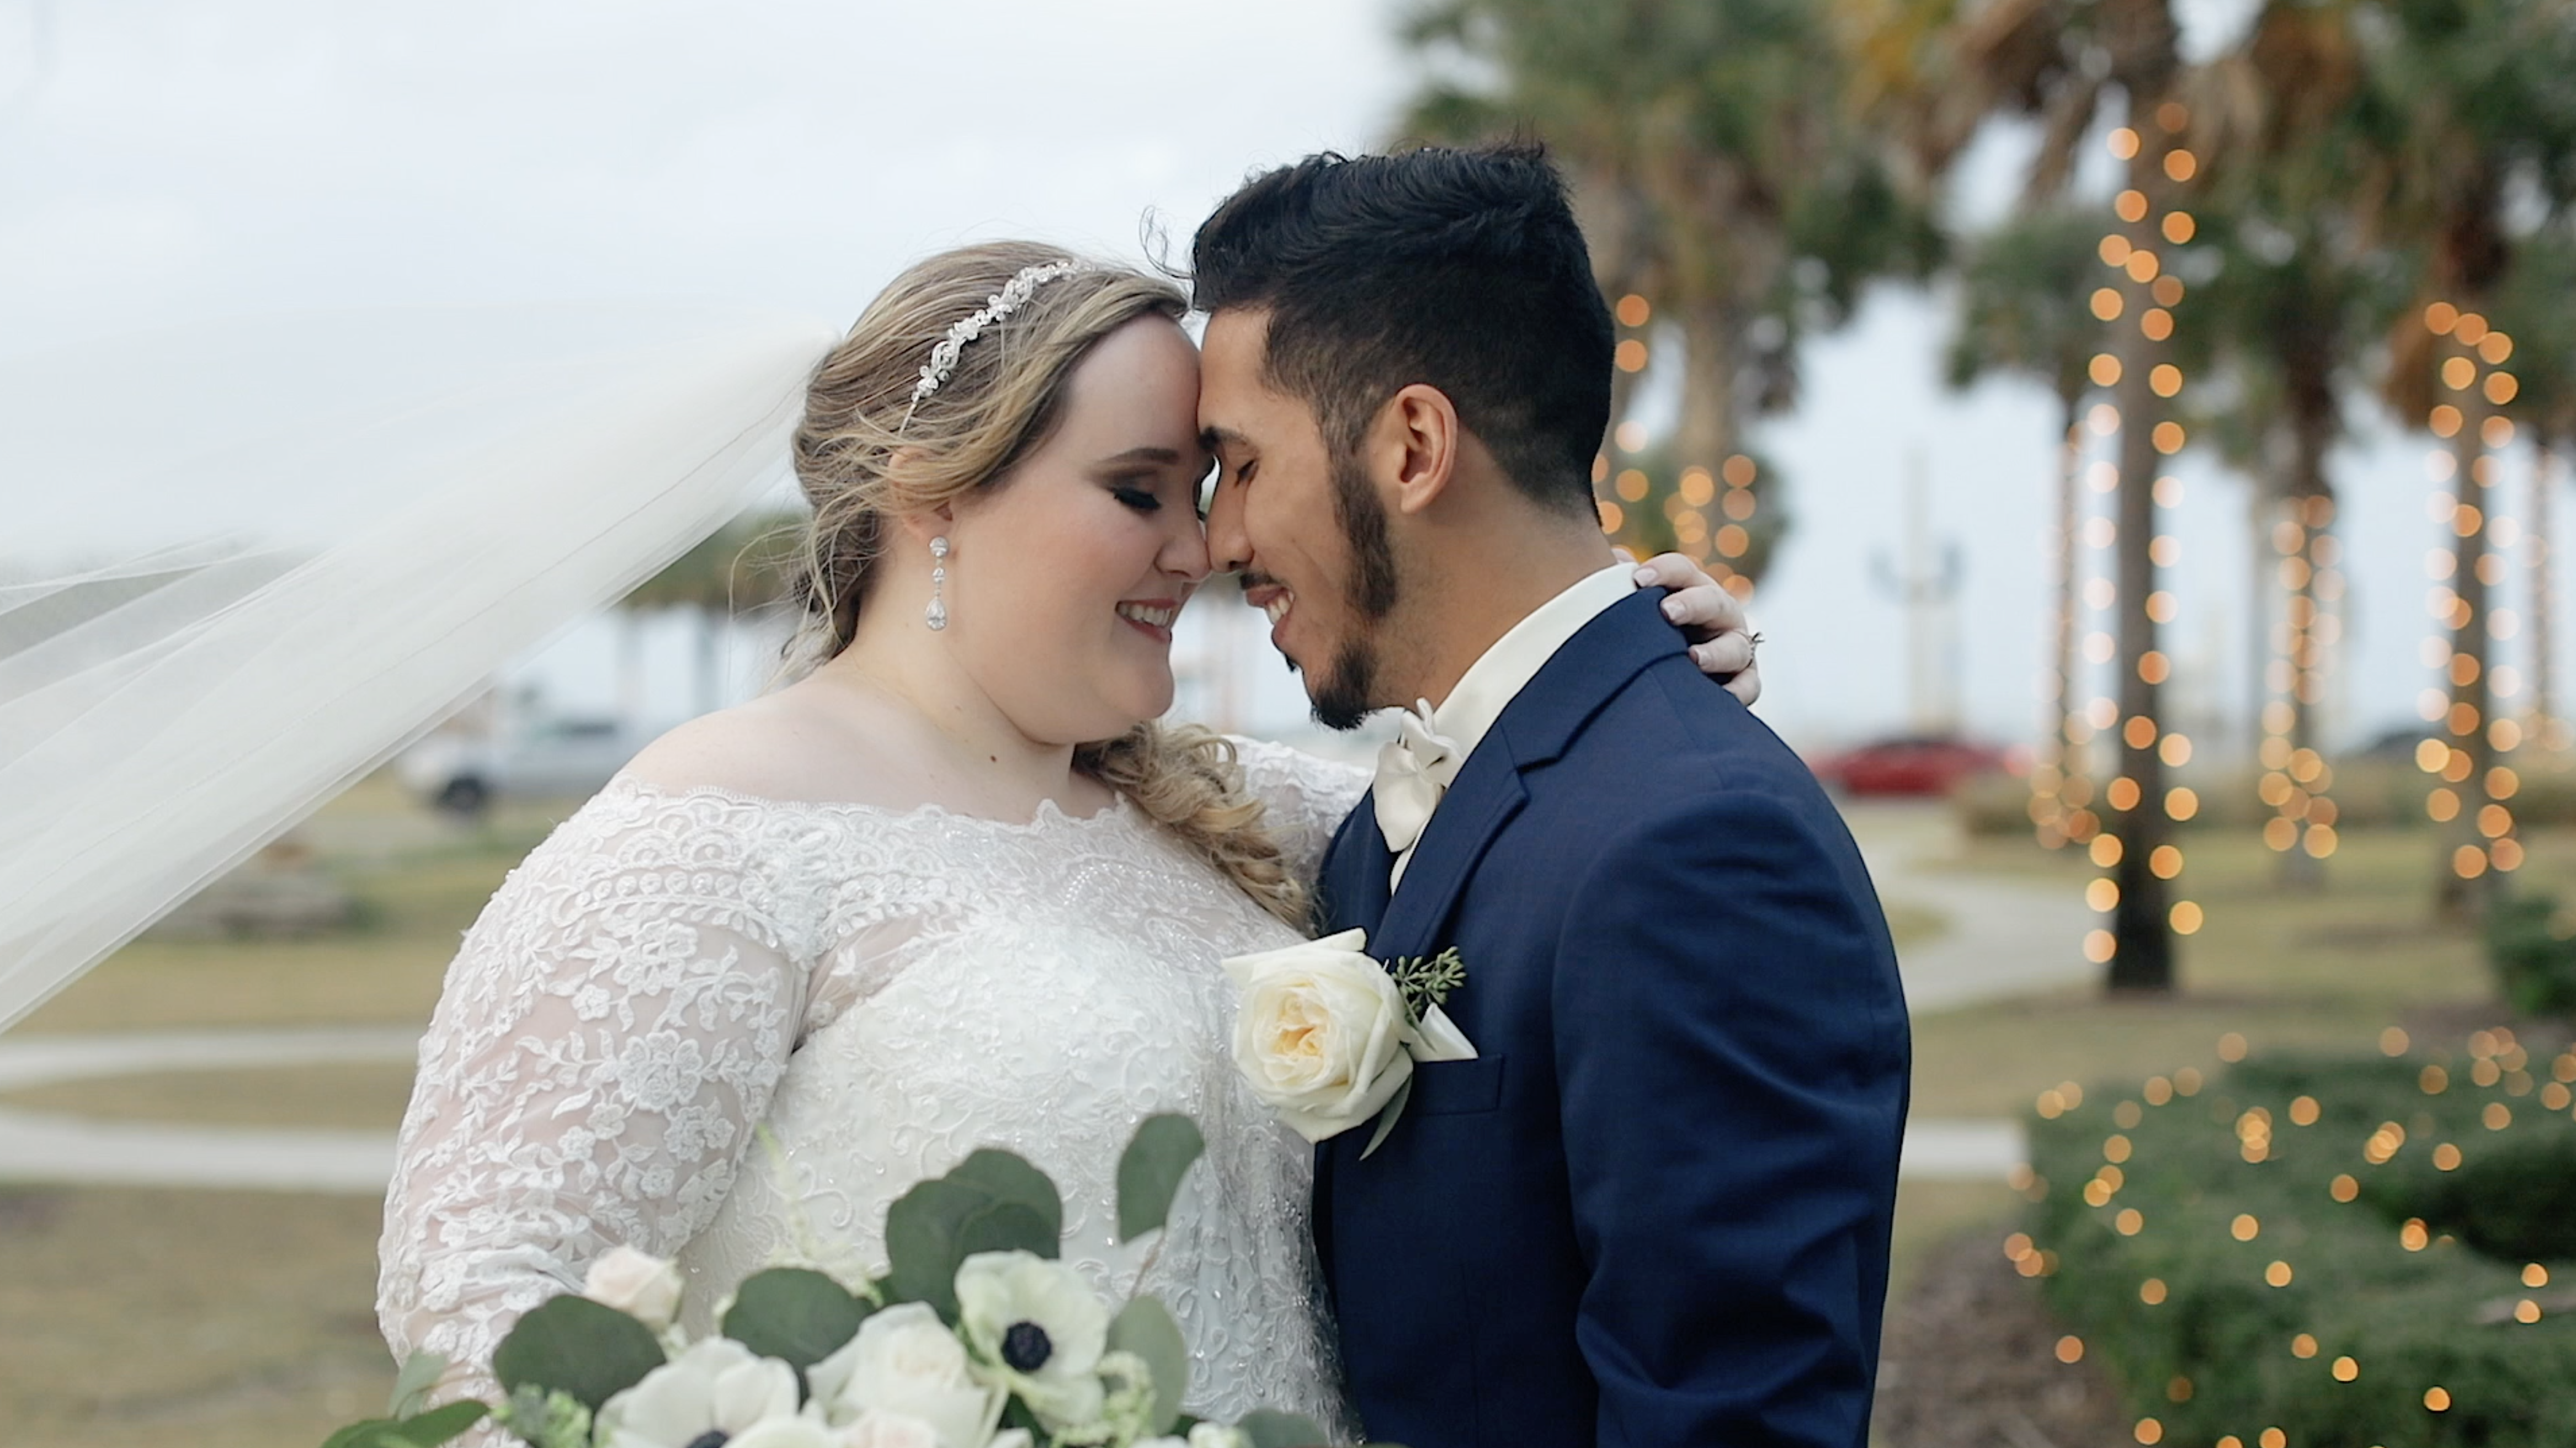 Sarah + Ricky | St. Augustine, Florida | The White Room